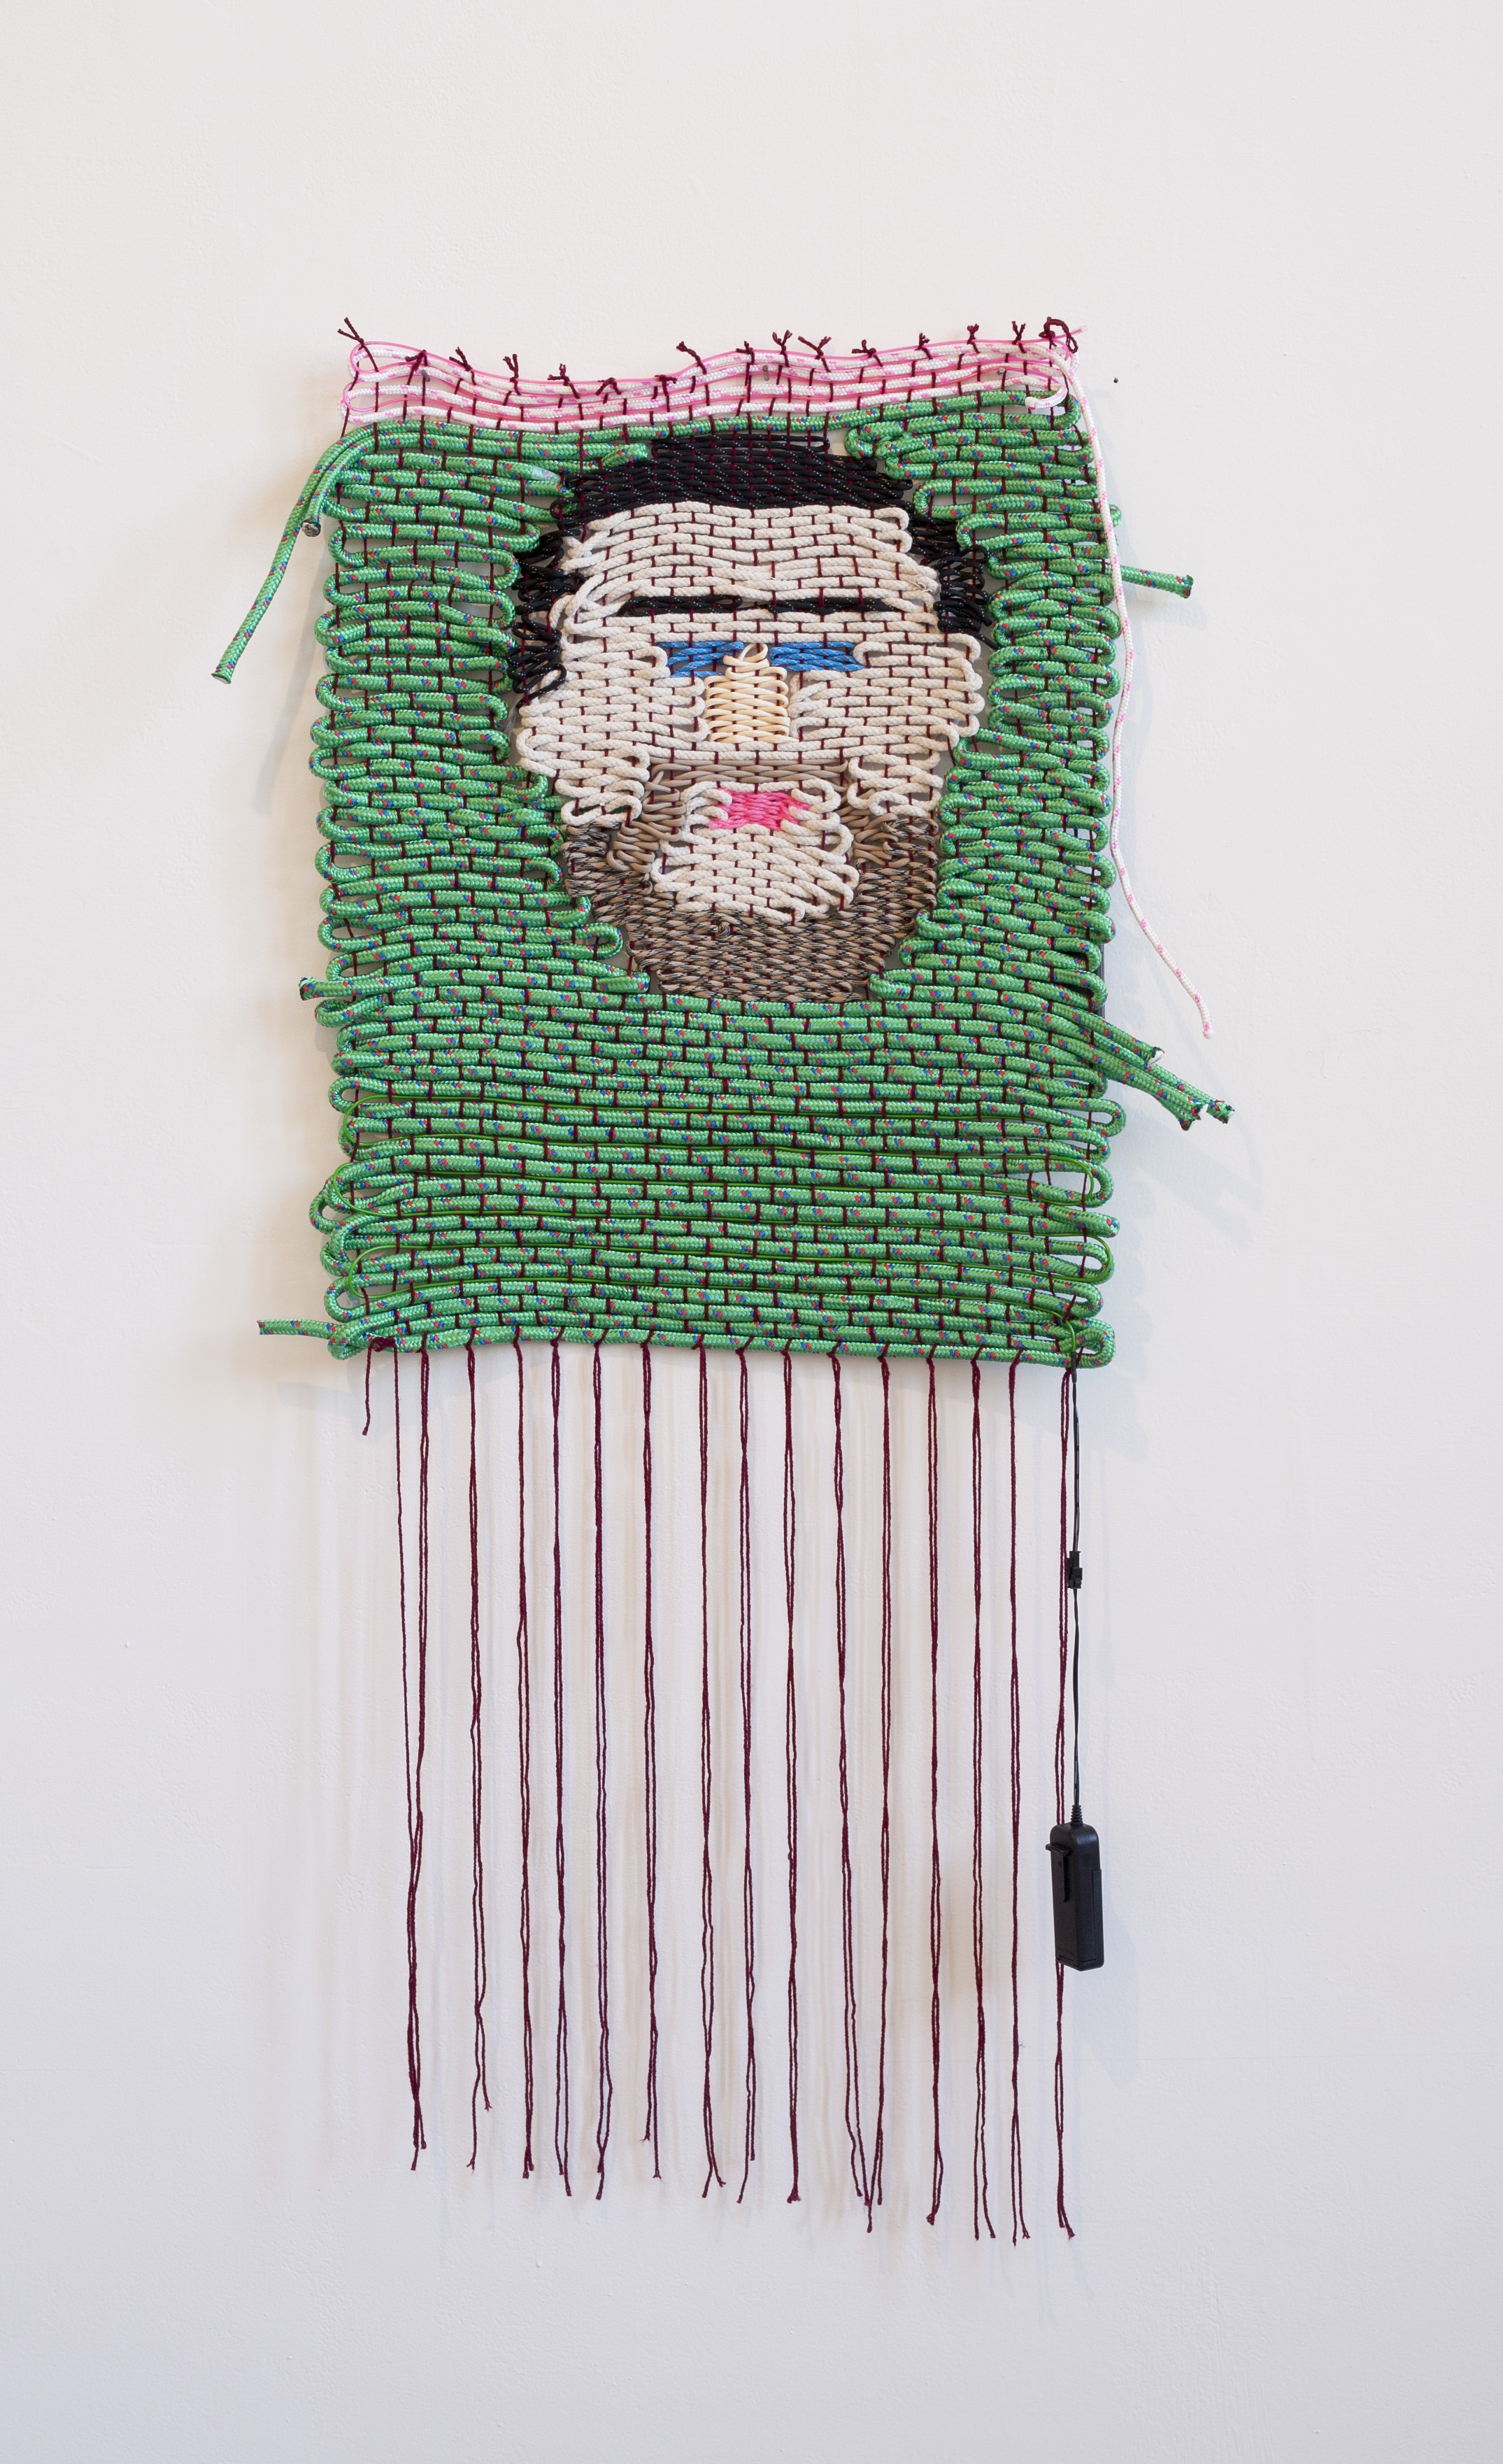 how many fucks you had?, 2015 Wool, polypropene rope, paracord, cotton sash cord, and electroluminescent wire. 130 x 50cm  Photo by Nathan Brooker